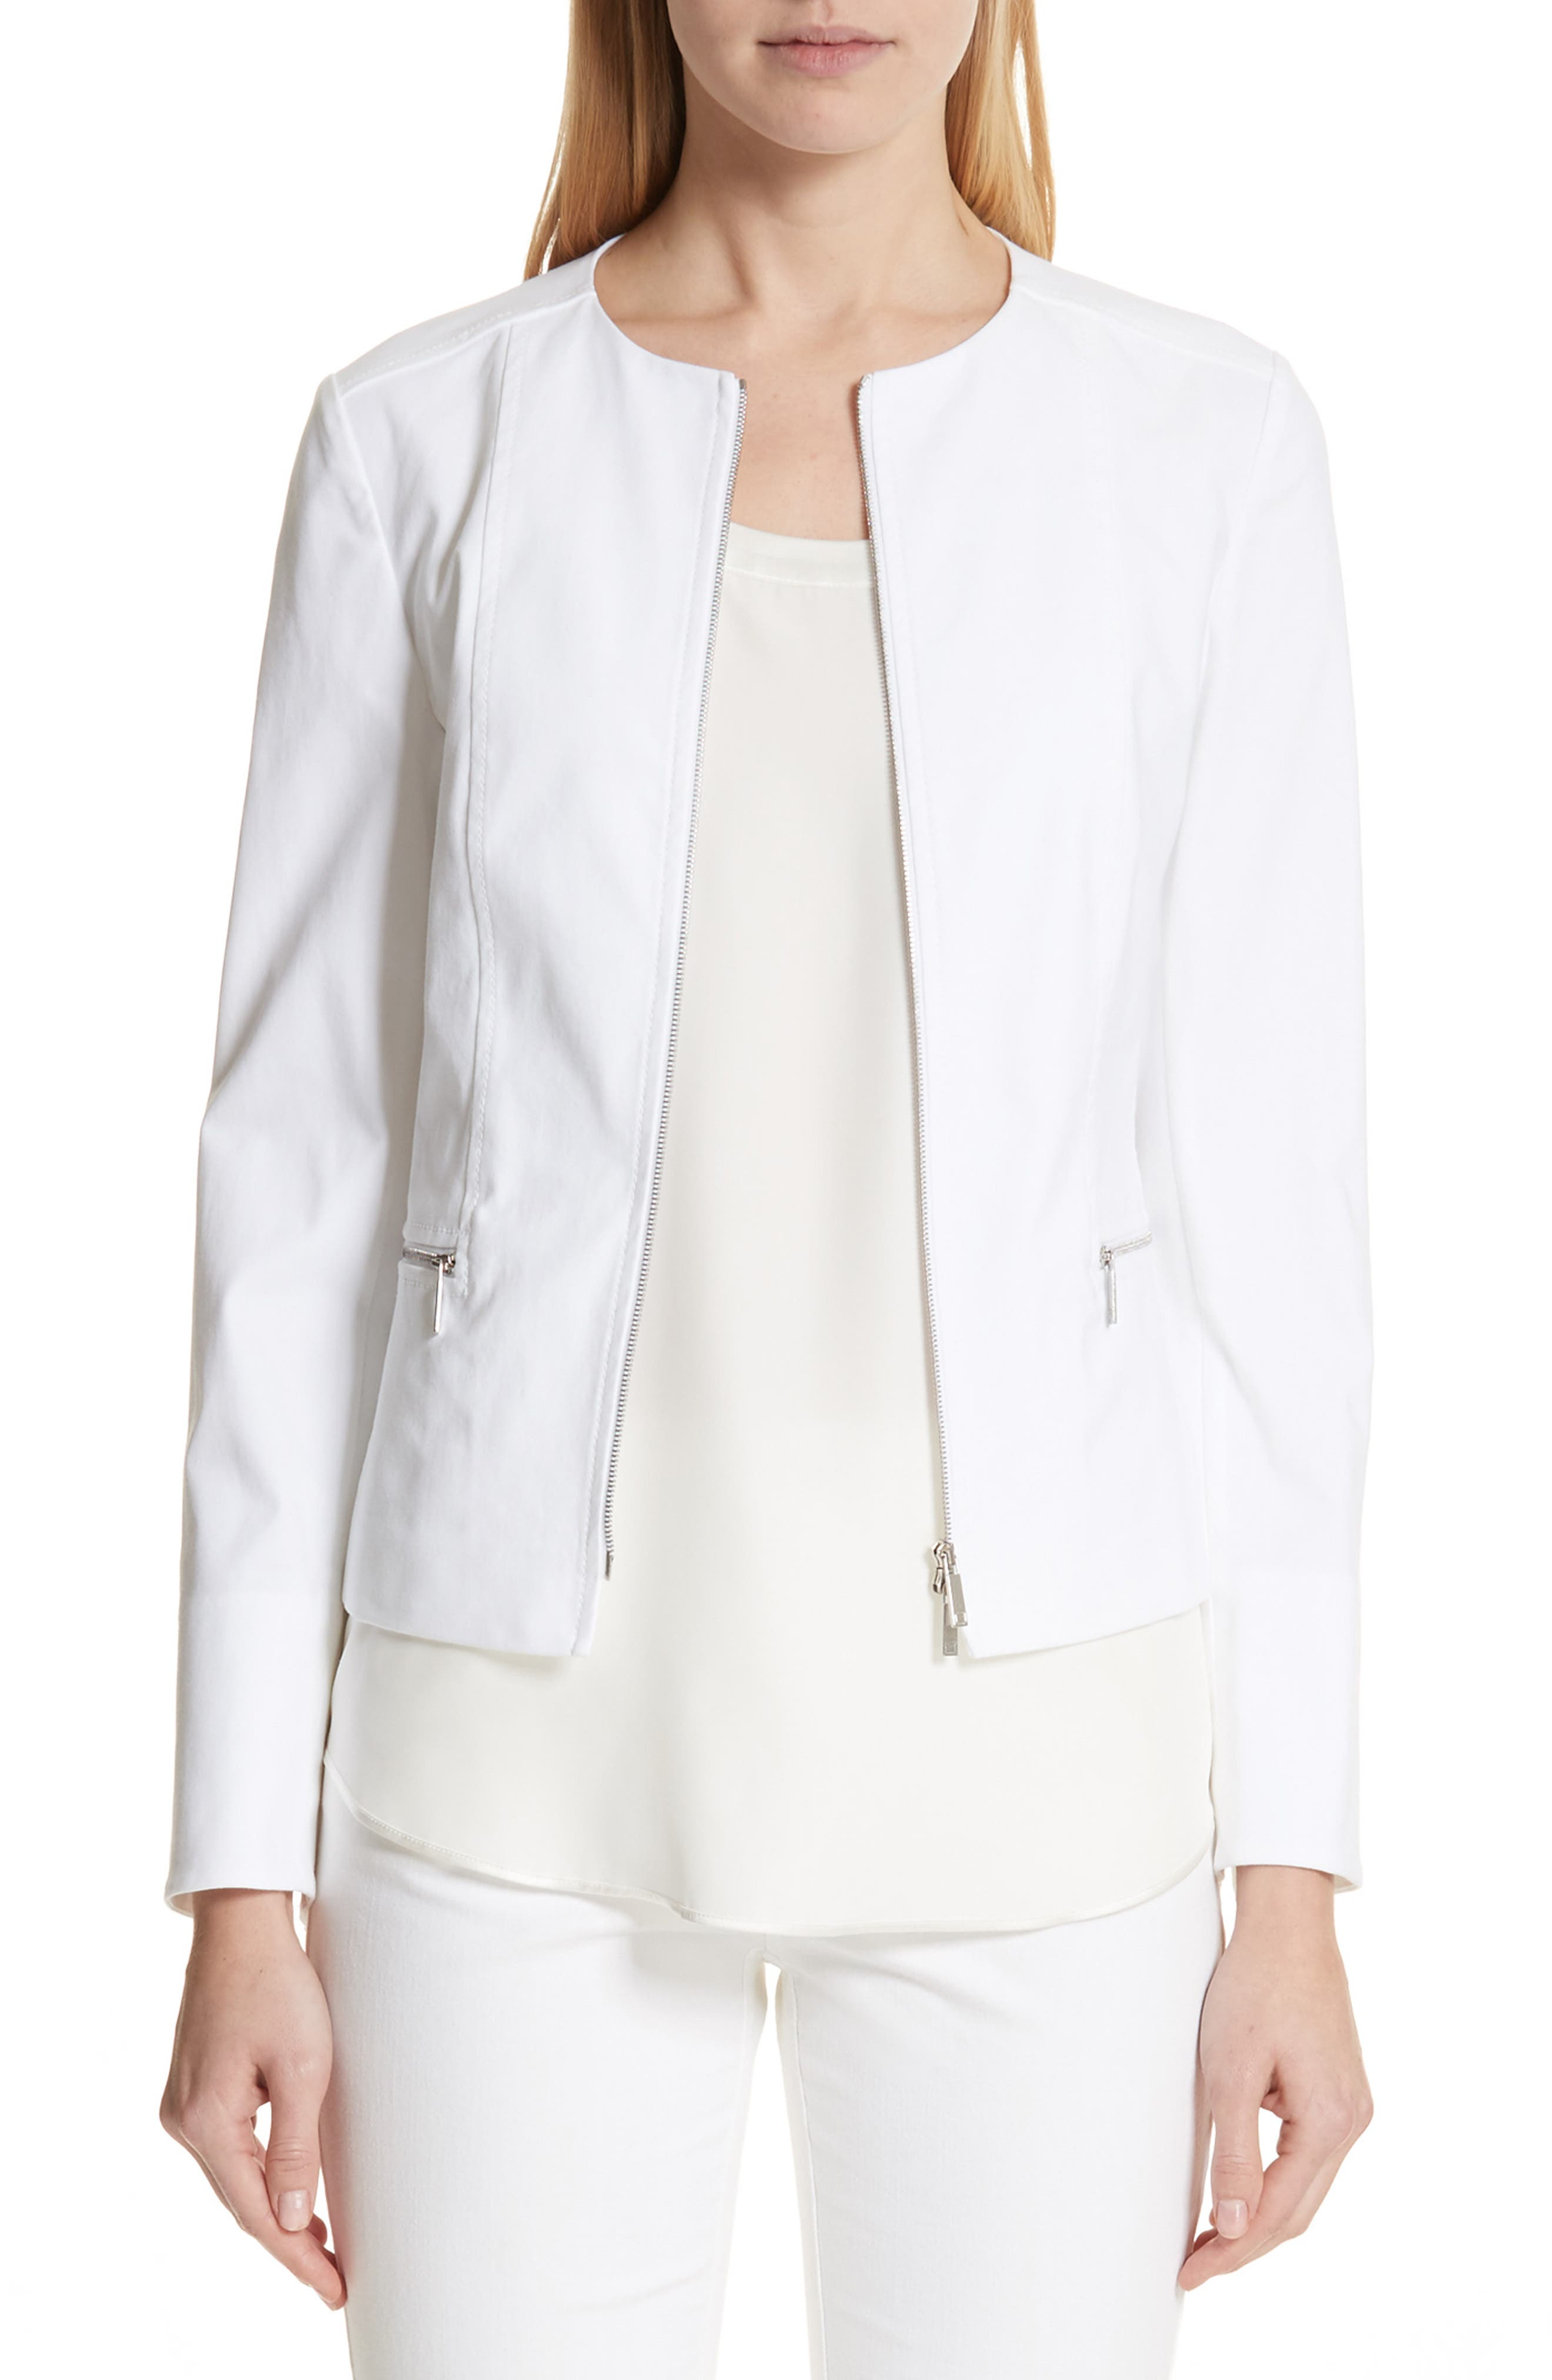 Noelle Catalina Stretch Jacket,                         Main,                         color, White